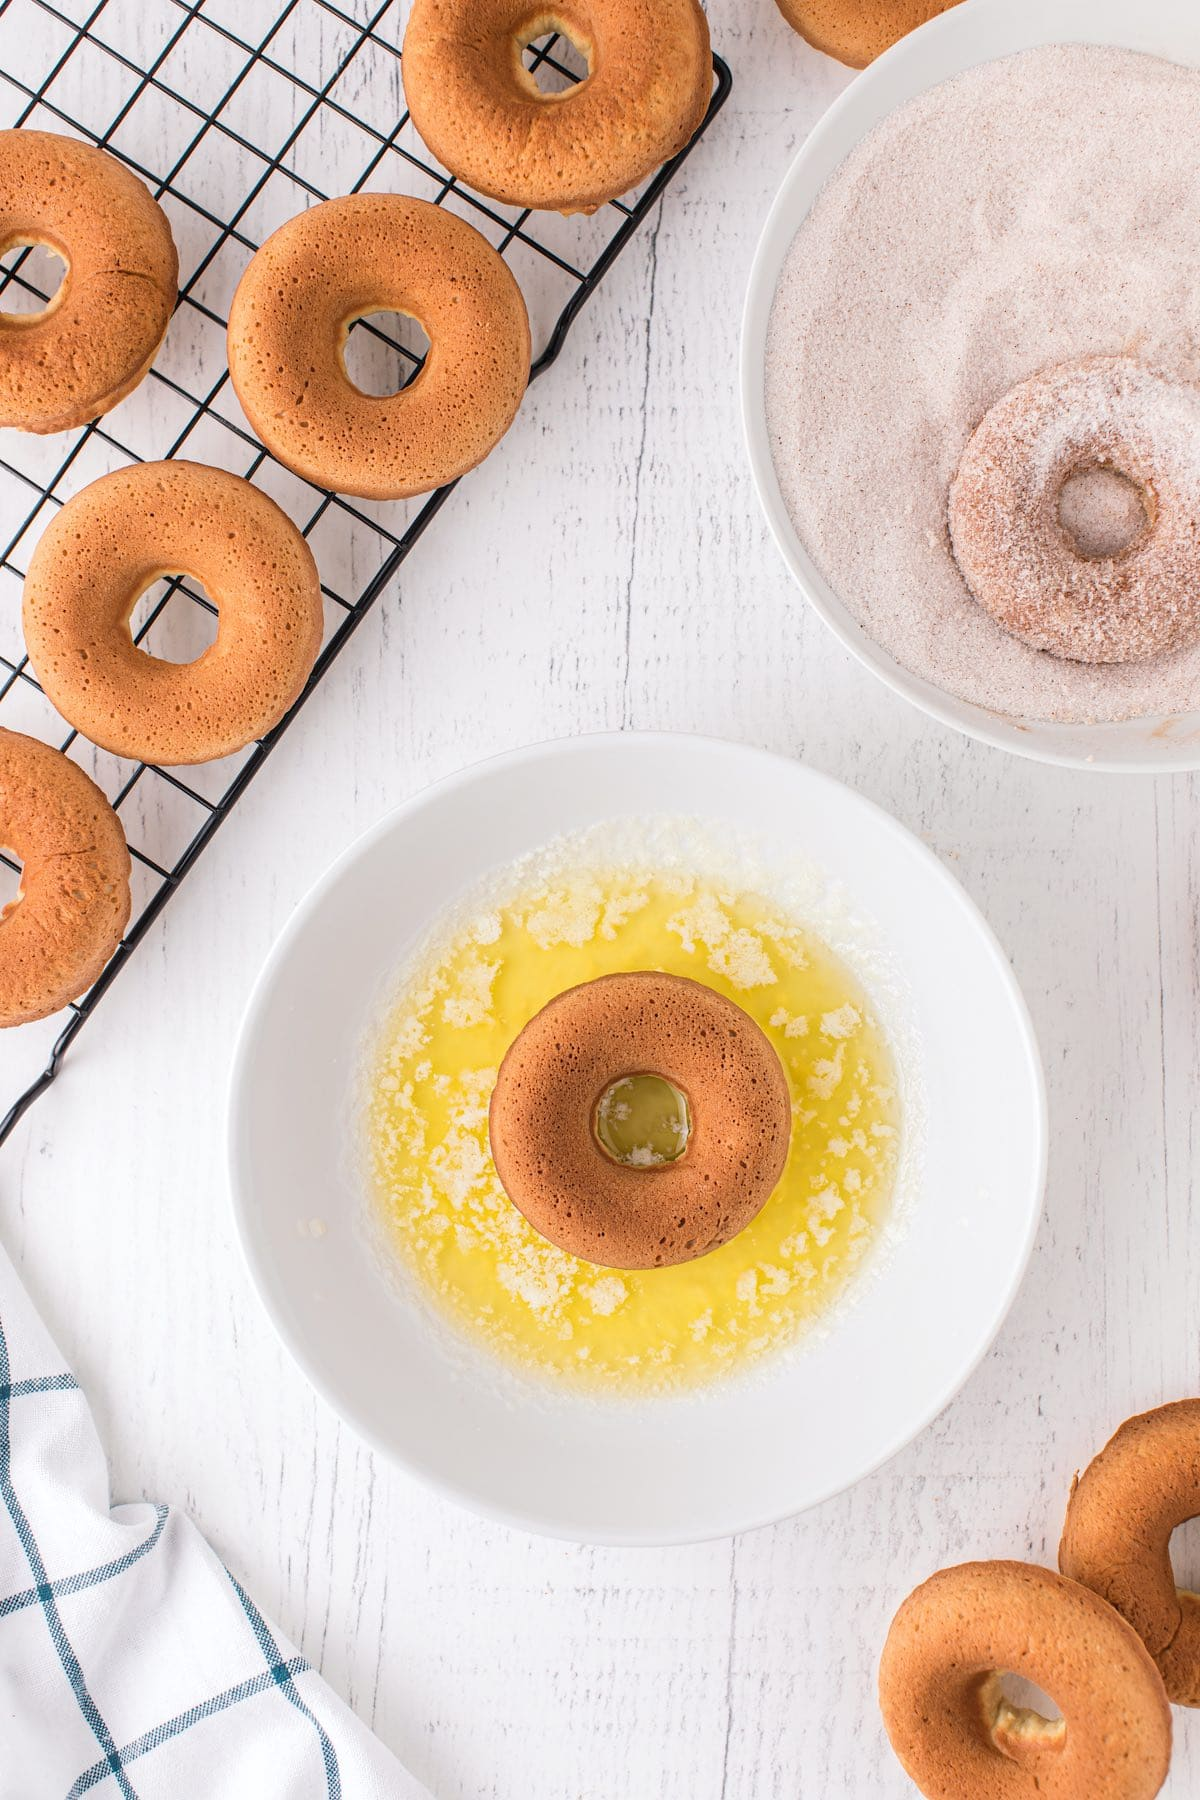 dip each donut into melted butter